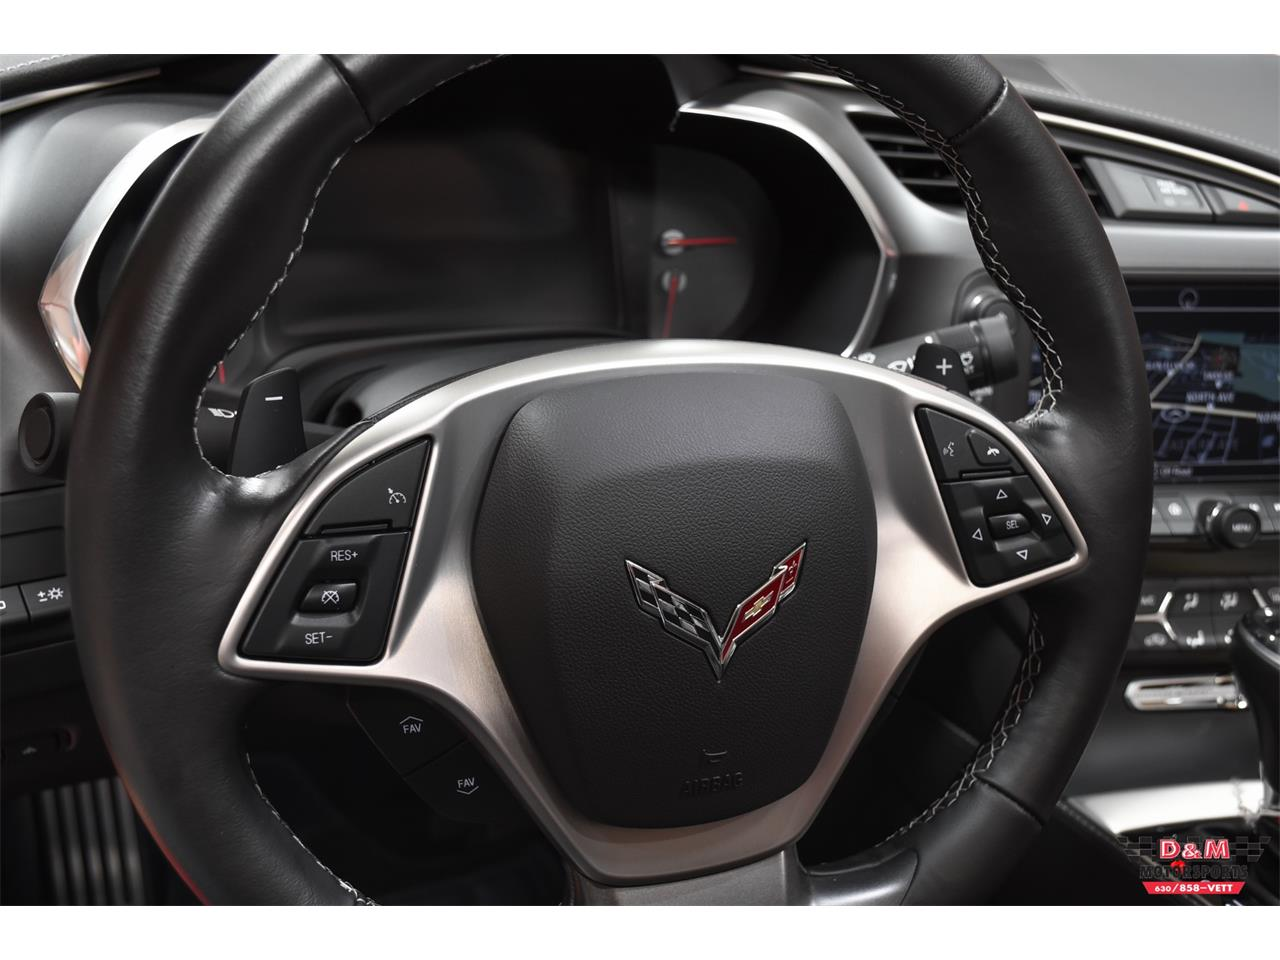 Large Picture of '18 Chevrolet Corvette located in Illinois - $61,995.00 Offered by D & M Motorsports - PWM3